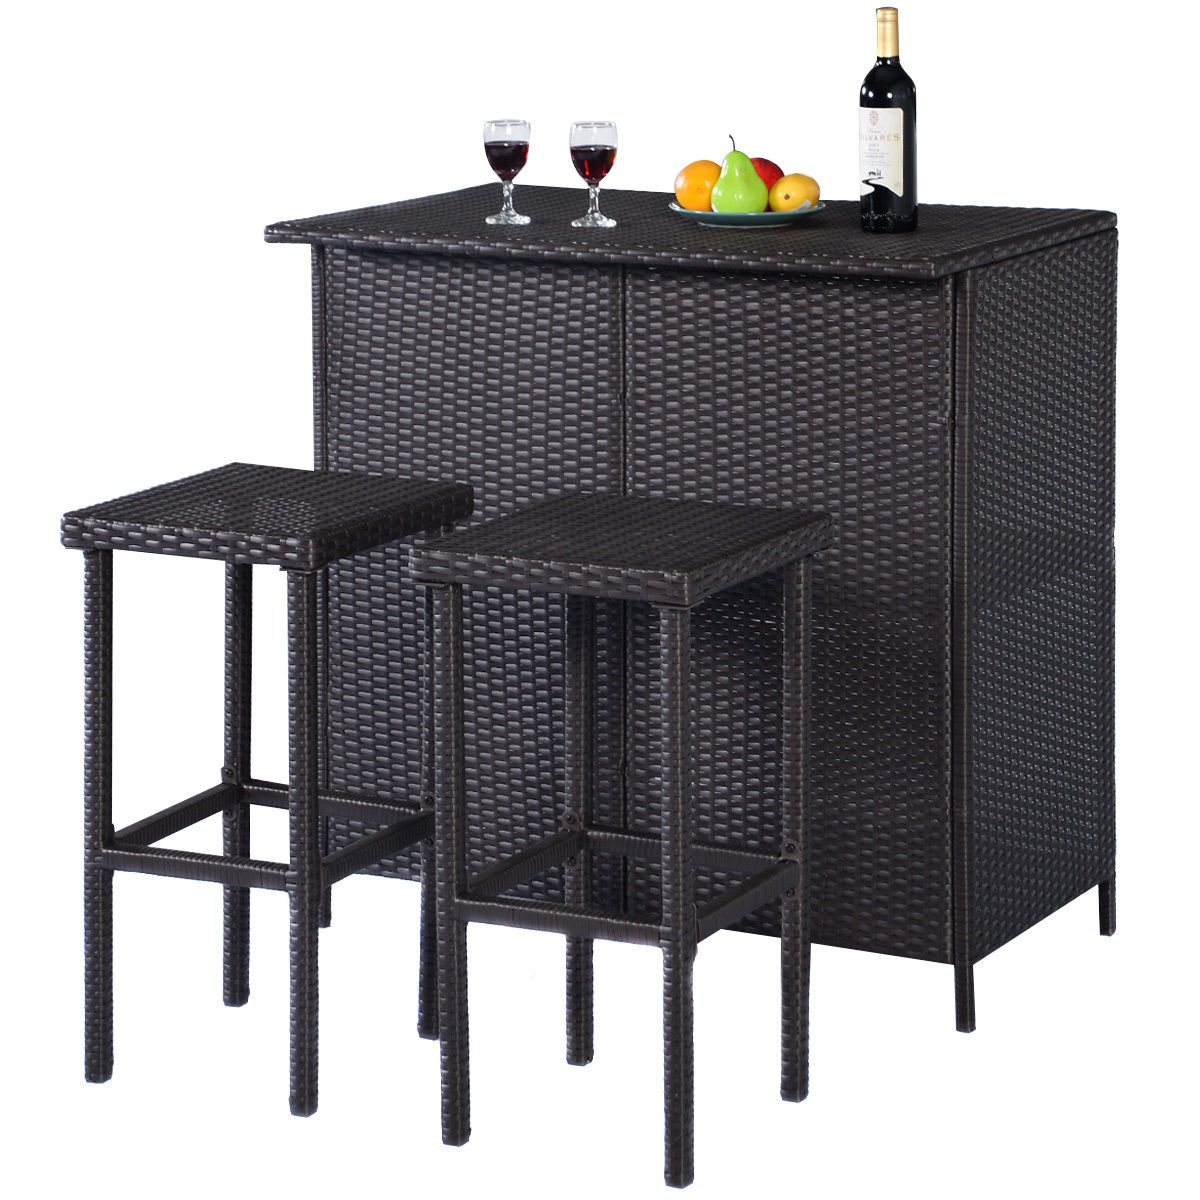 Costway 3-Piece Wicker Outdoor Patio Bar Set with Table & 2 Stools, Brown